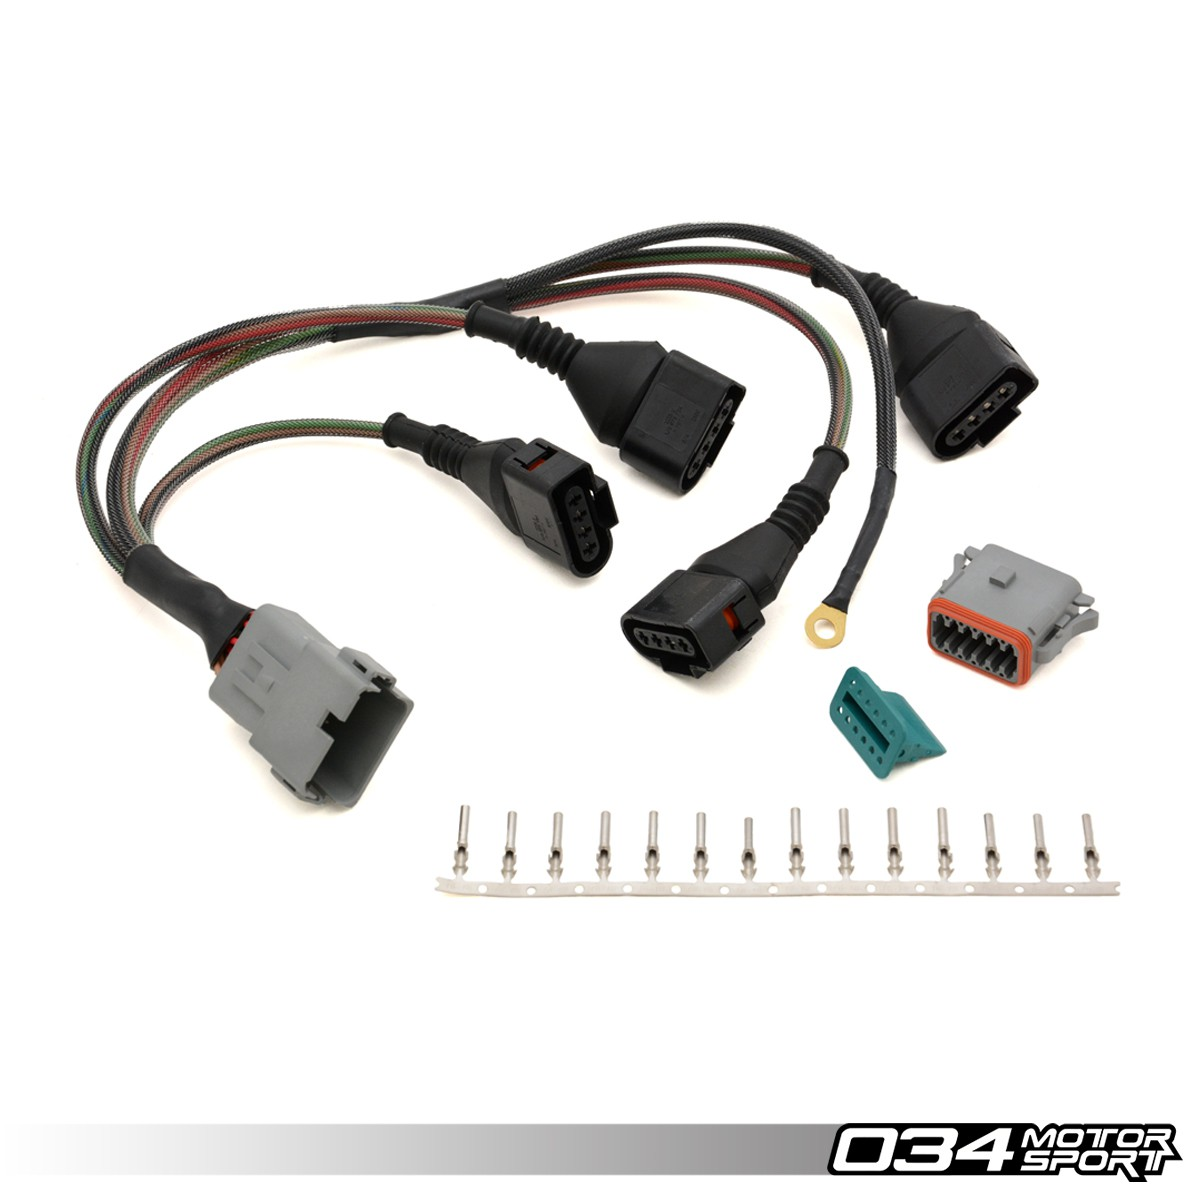 repair update harness audi volkswagen 18t with 4 wire coils 034motorsport 034 701 0004 2 repair update harness, audi volkswagen 1 8t with 4 wire coils Dune Buggy Wiring Harness Kit at eliteediting.co